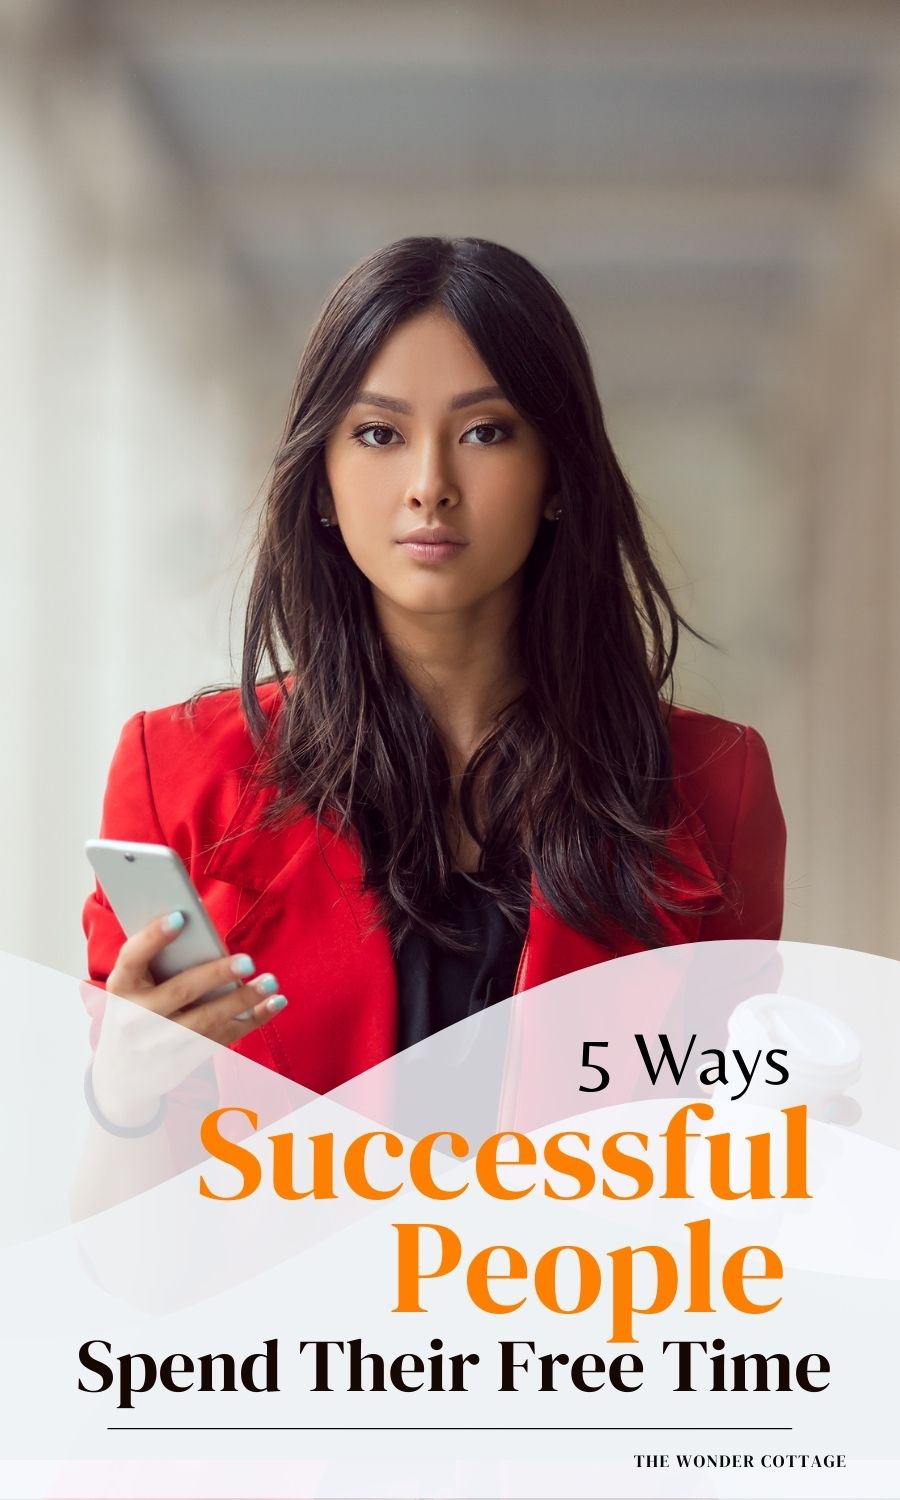 5 Ways Successful People Spend Their Free Time